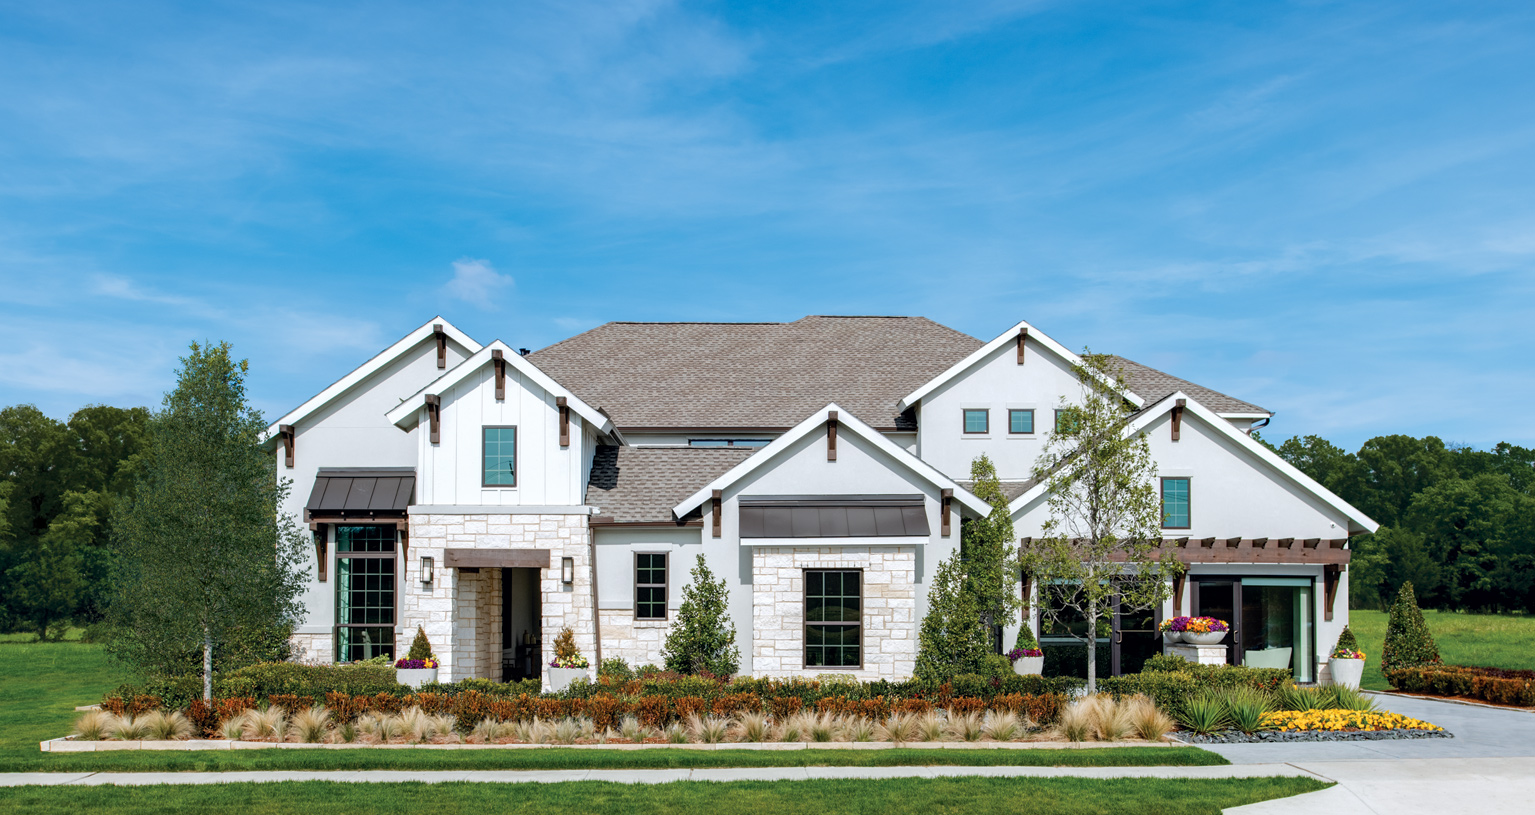 Garage Apartments For Rent Grapevine Tx New Homes In Grapevine Tx New Construction Homes Toll Brothers